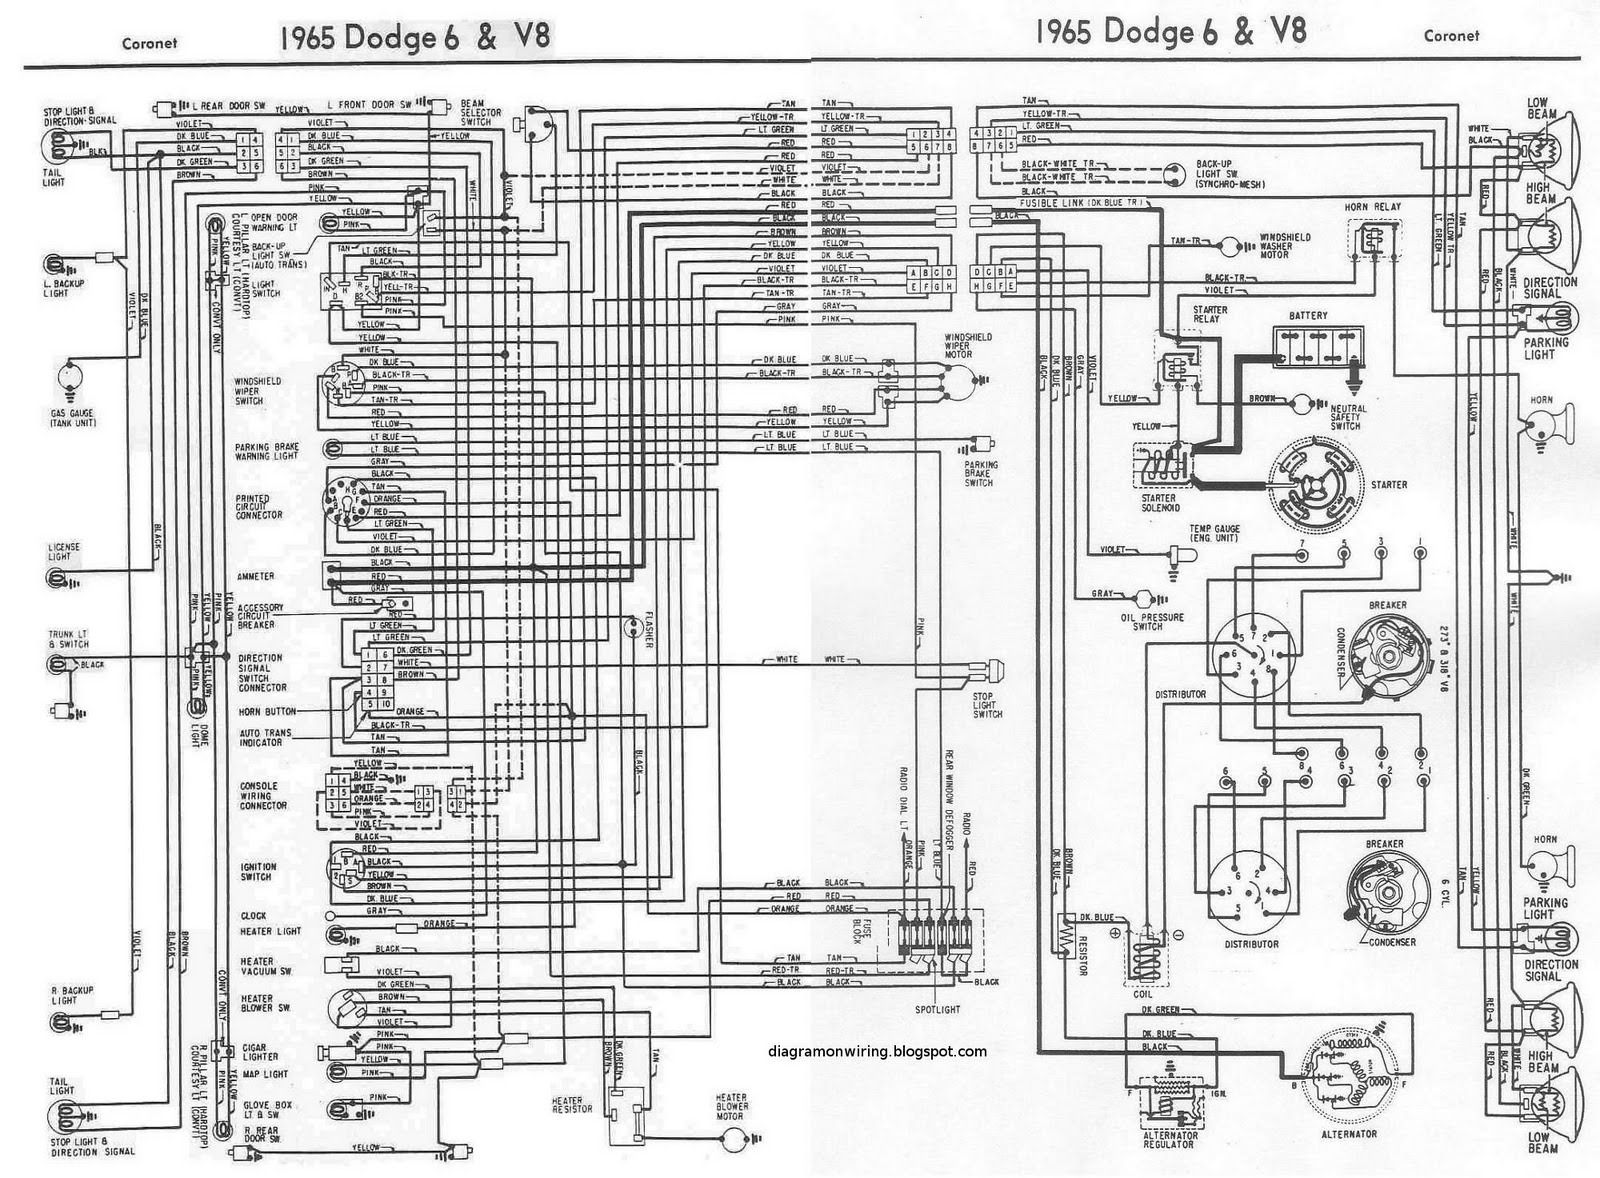 1969 Dodge Coronet Wiring Diagram